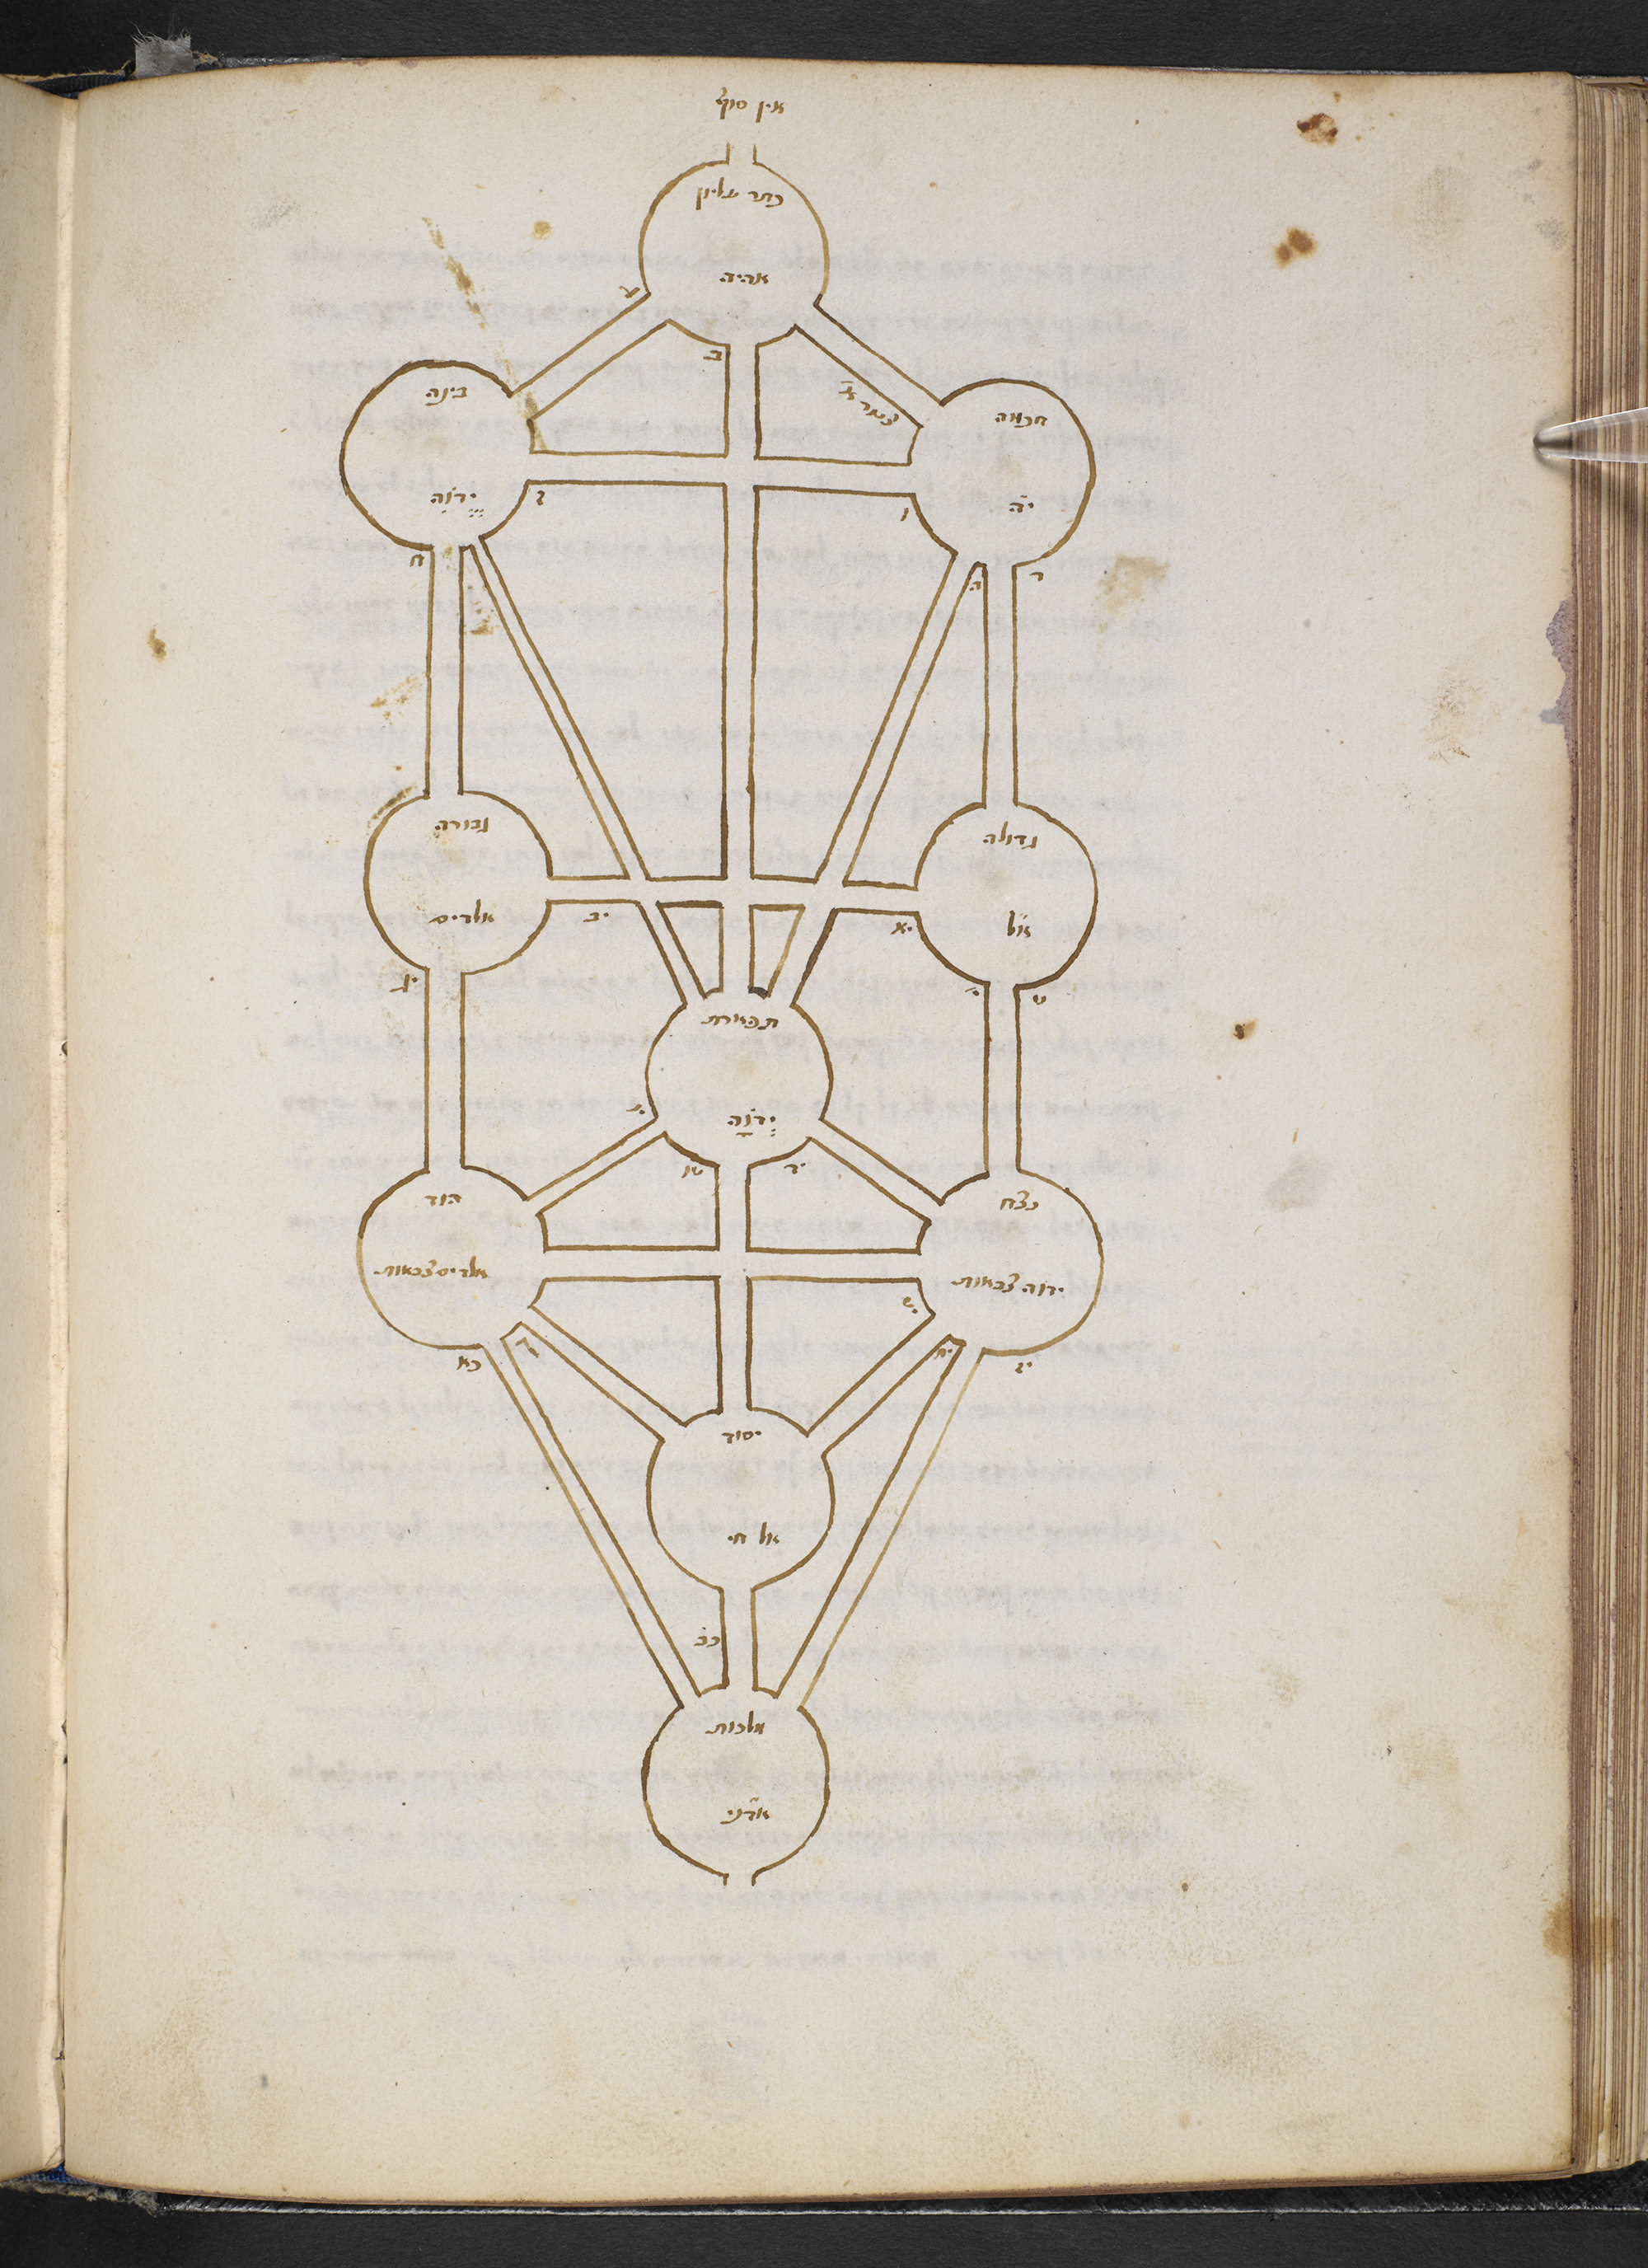 Arboreal diagram, Kabbalah: An abridgment of a kabbalistic treatise, Add MS 27091, Hebrew Manuscripts Digitisation Project, British Library